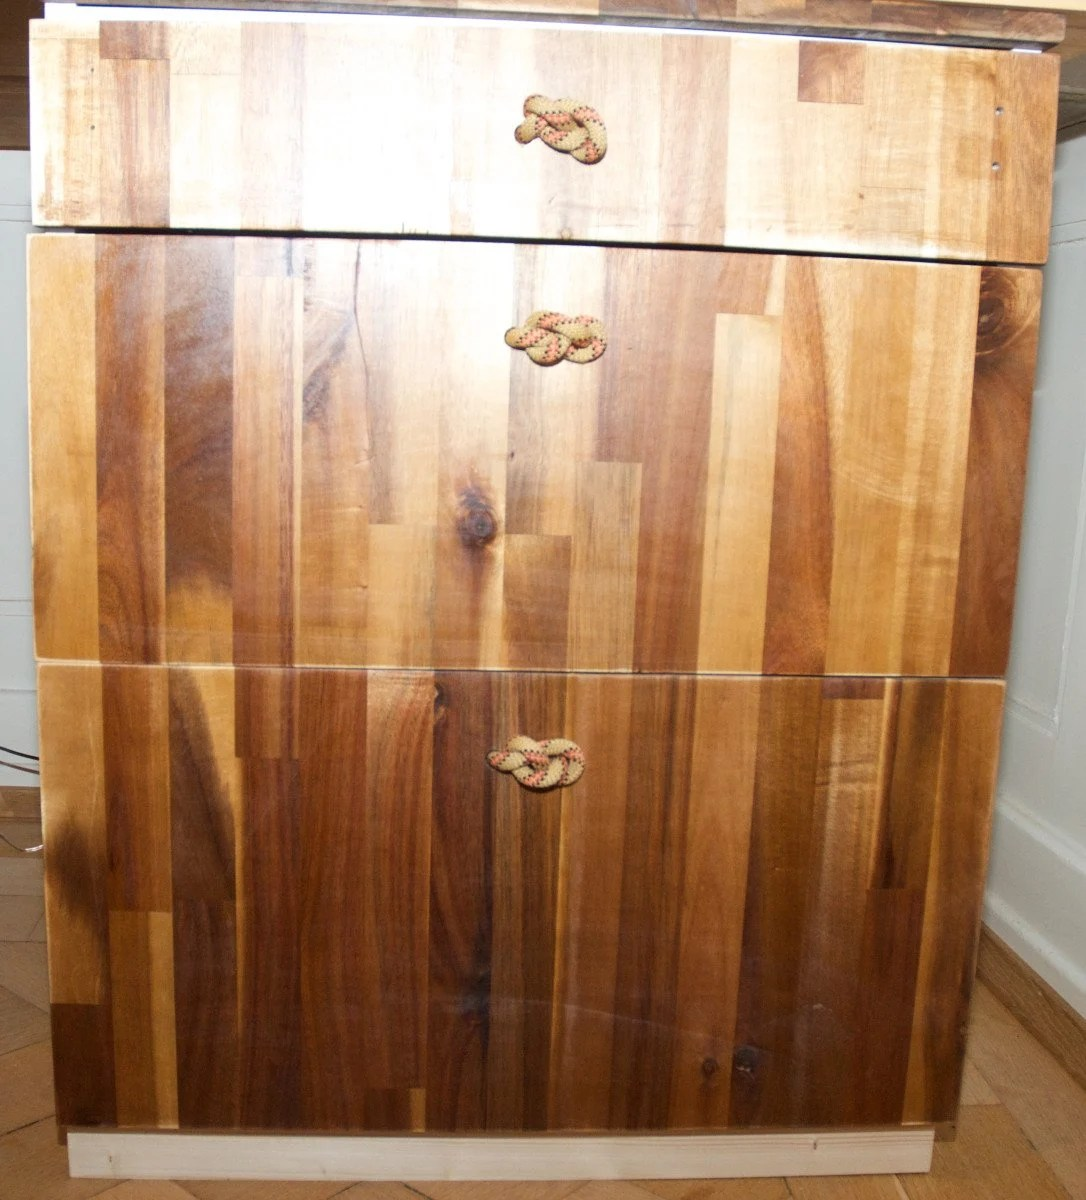 Ikea Faktum Fronten Custom Front To Faktum Cabinet With Climbing Rope Knot As Drawer